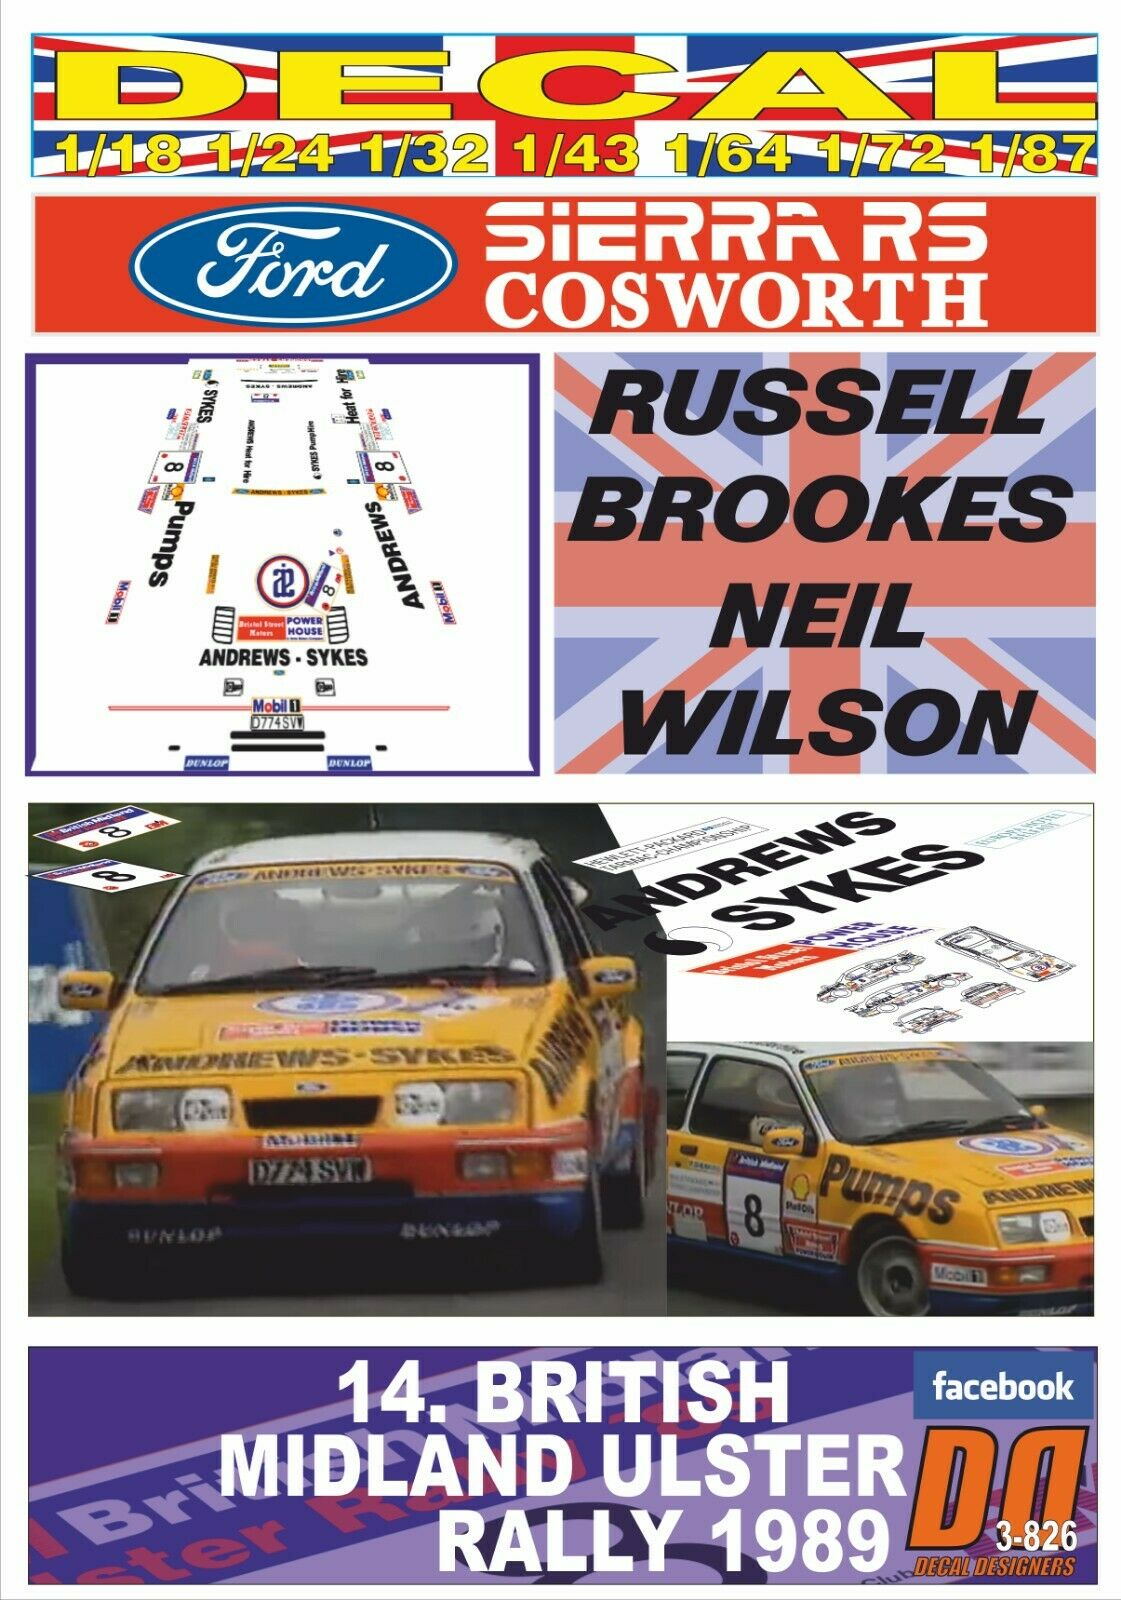 Decal Ford Sierra RS Cosworth R. Brookes ulster R. 1989 1989 1989 2nd (05) a8538f